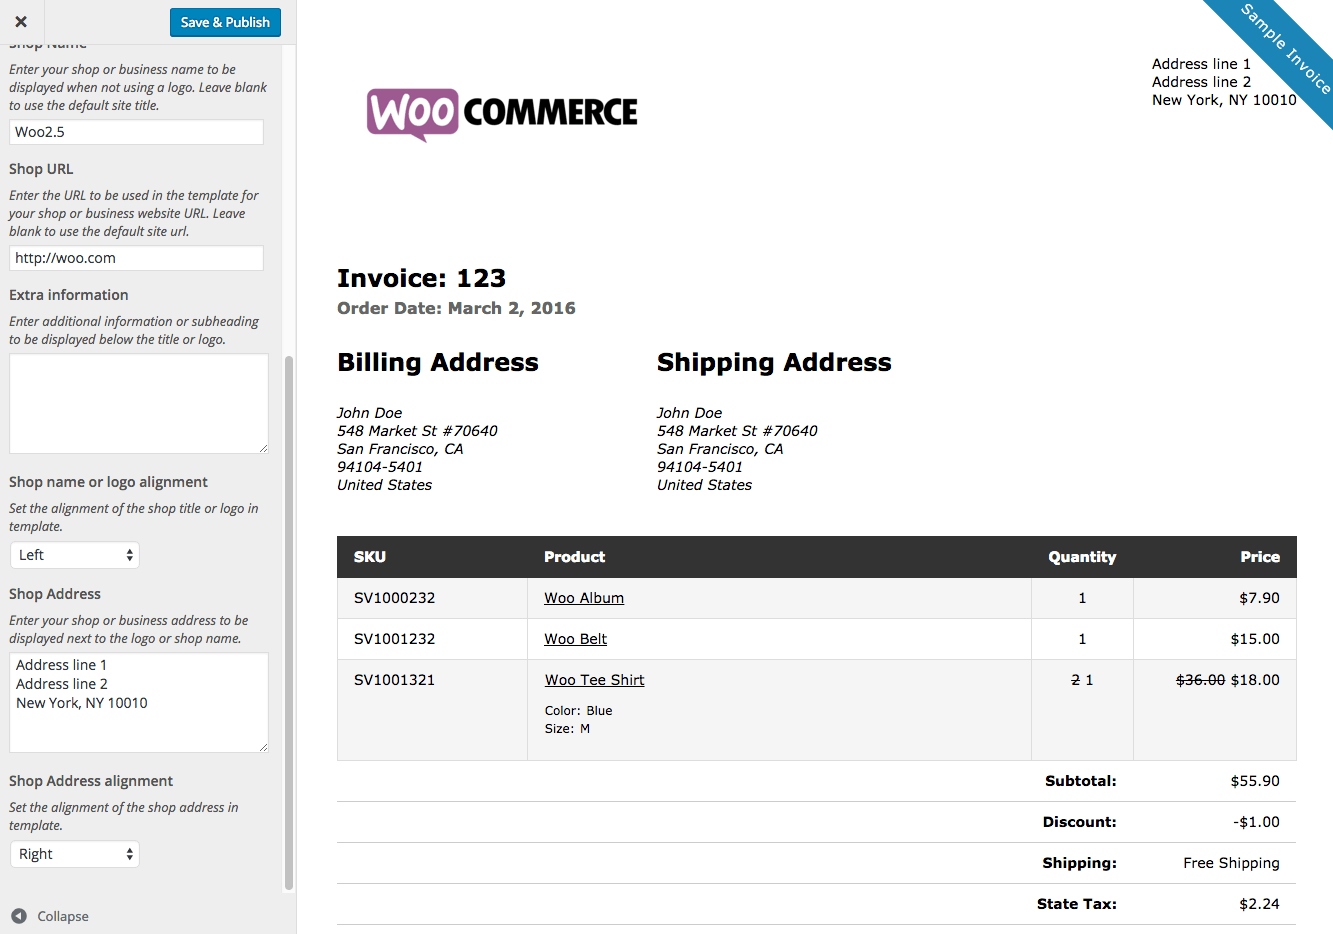 Maidofhonortoastus  Seductive Woocommerce Print Invoices Amp Packing Lists  Woocommerce Docs With Great Woocommerce Print Invoices  Packing Lists Customizer With Beautiful Zoho Invoices Also Factoring Invoices In Addition Invoice Management And Business Invoices As Well As Purchase Invoice Additionally Billing Invoice Template From Docswoocommercecom With Maidofhonortoastus  Great Woocommerce Print Invoices Amp Packing Lists  Woocommerce Docs With Beautiful Woocommerce Print Invoices  Packing Lists Customizer And Seductive Zoho Invoices Also Factoring Invoices In Addition Invoice Management From Docswoocommercecom